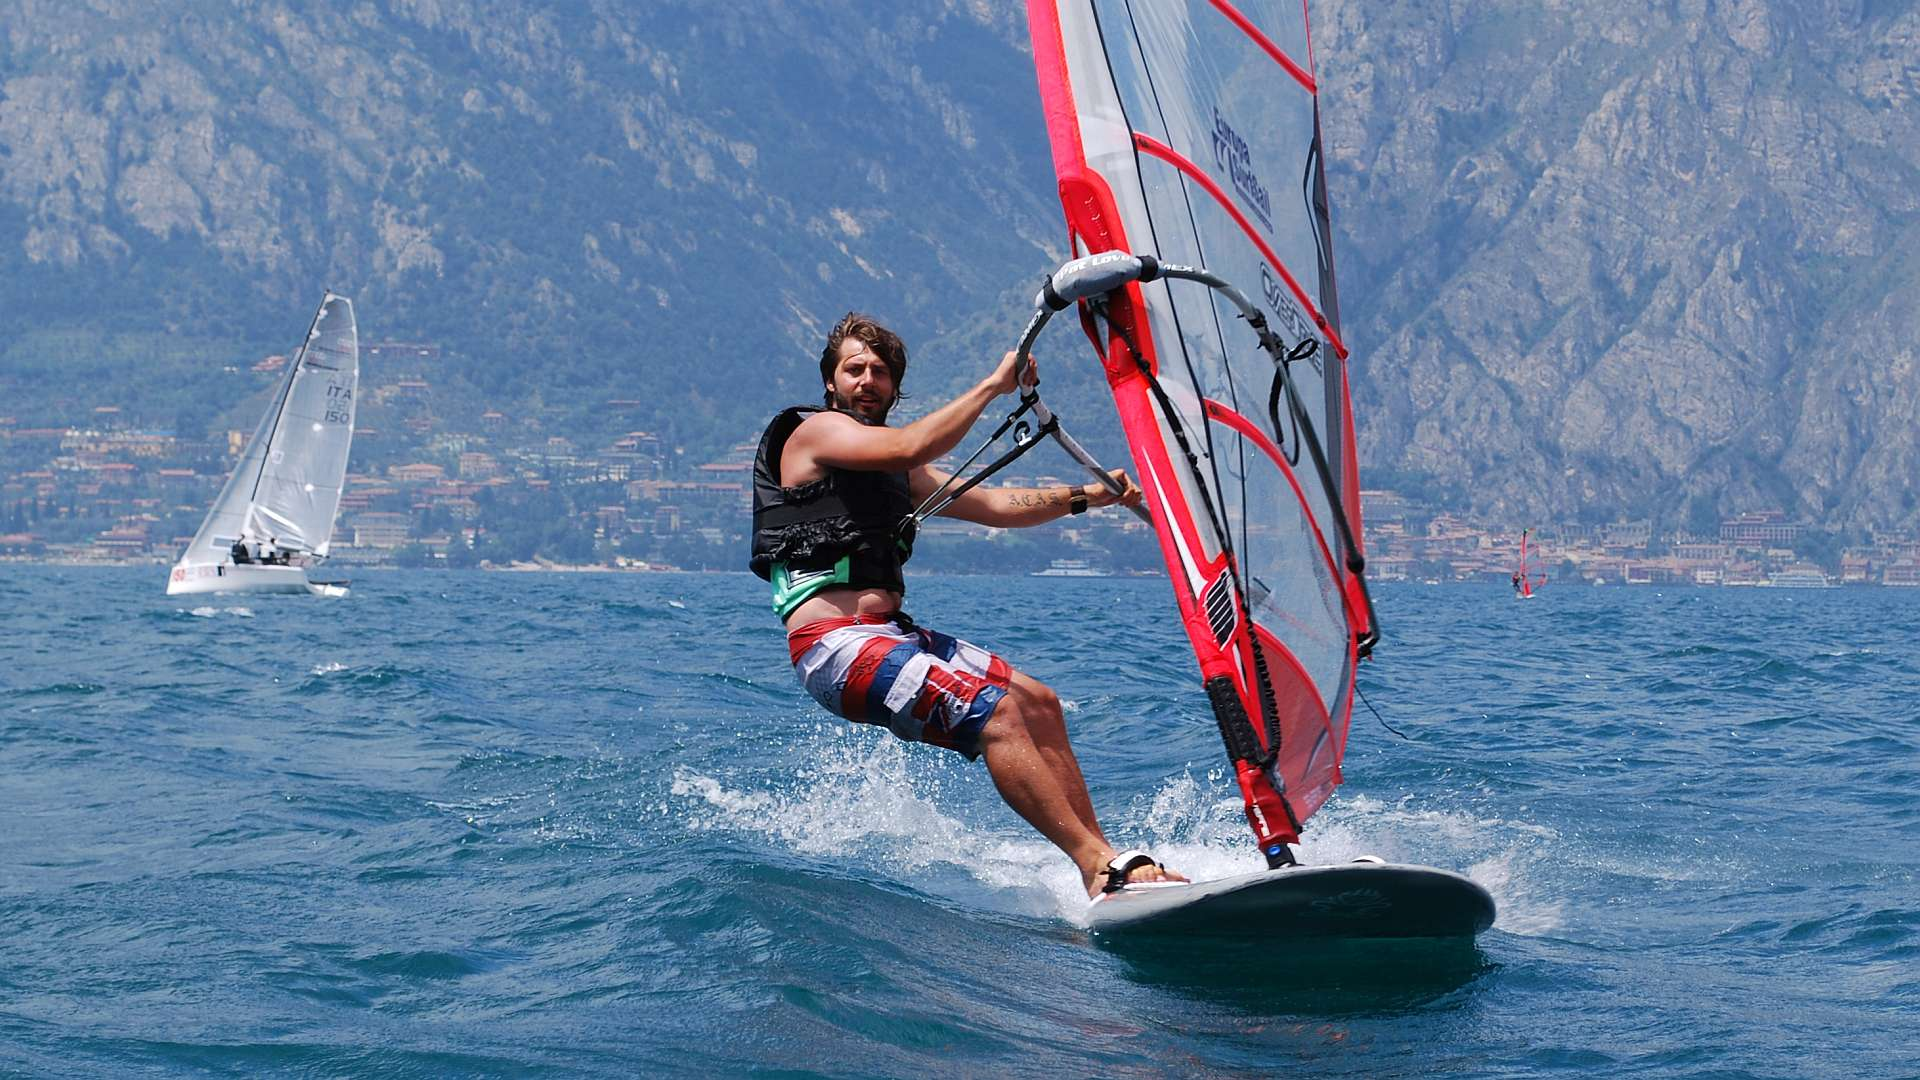 Windsurfing photo